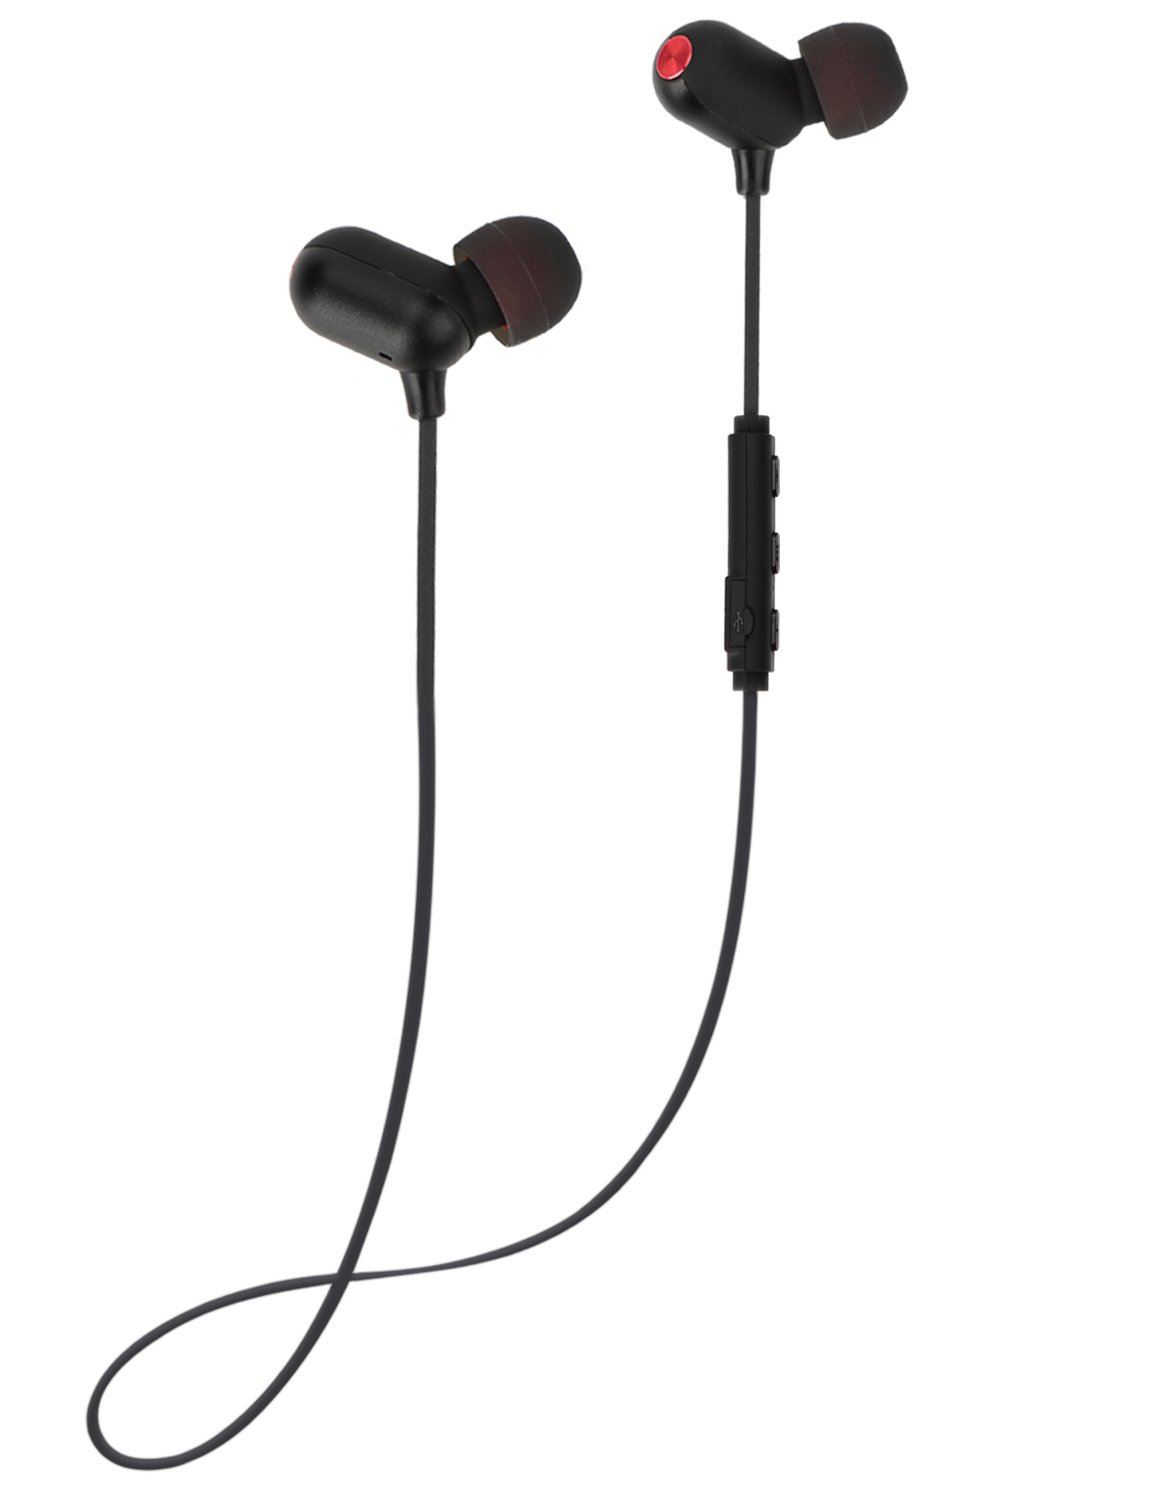 Bluetooth Earphones, ZENBRE E6 Bluetooth 4.1 Stereo Noise Isolating, Wireless Earphones Up to 7h Playtime, Water Resistant IPX4 Sport Earbuds Black